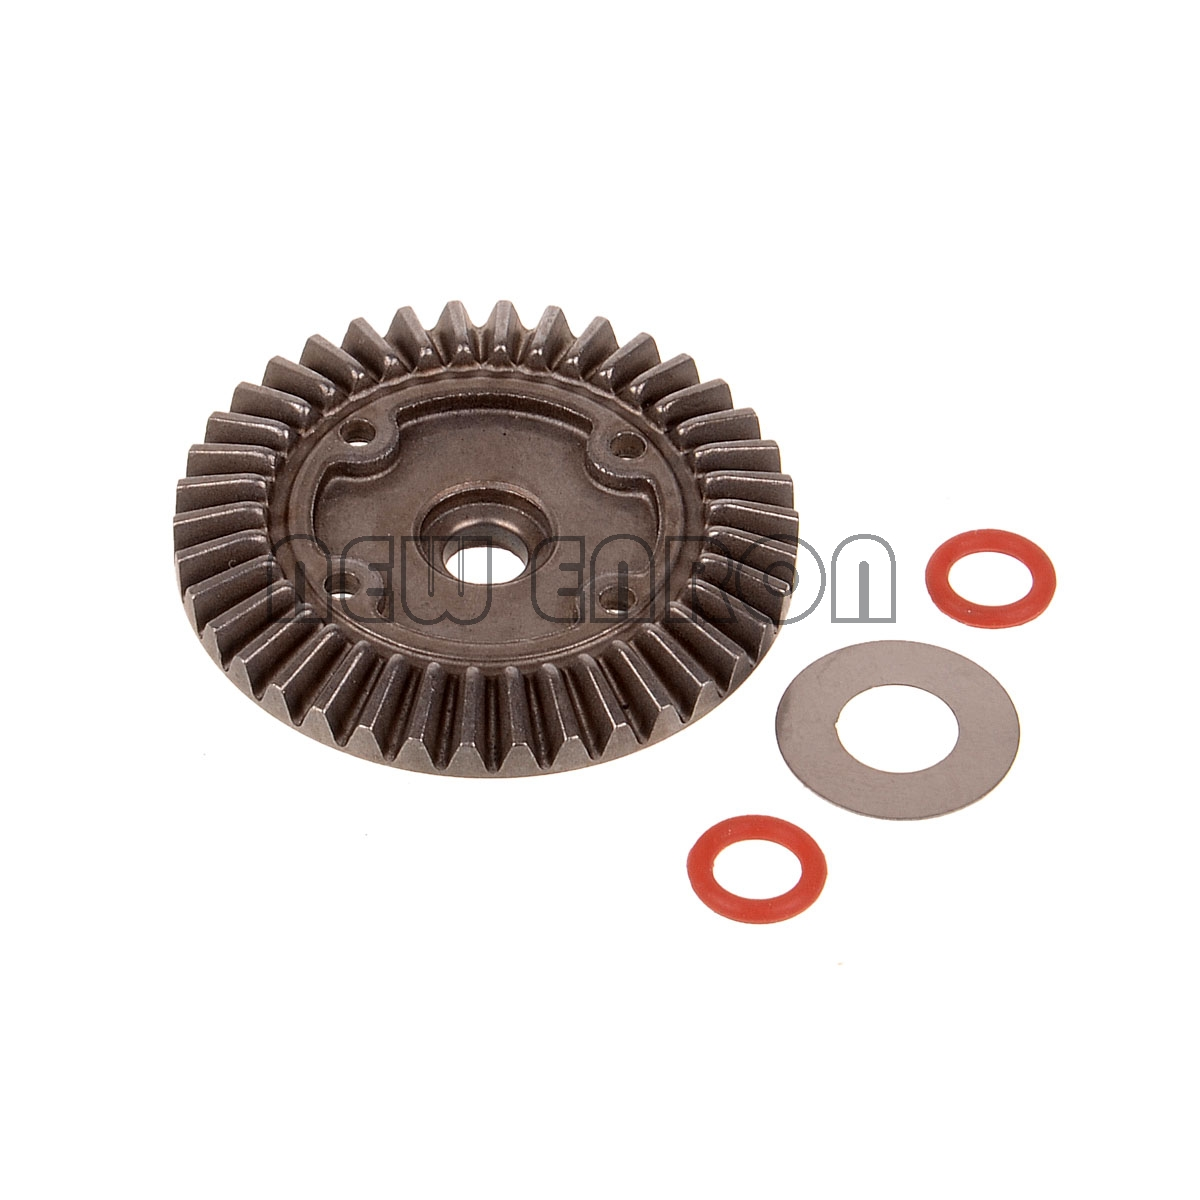 NEW ENRON Diff.Main Gear 02029 HSP Racing Spare Parts For 1/10 RC Model Car